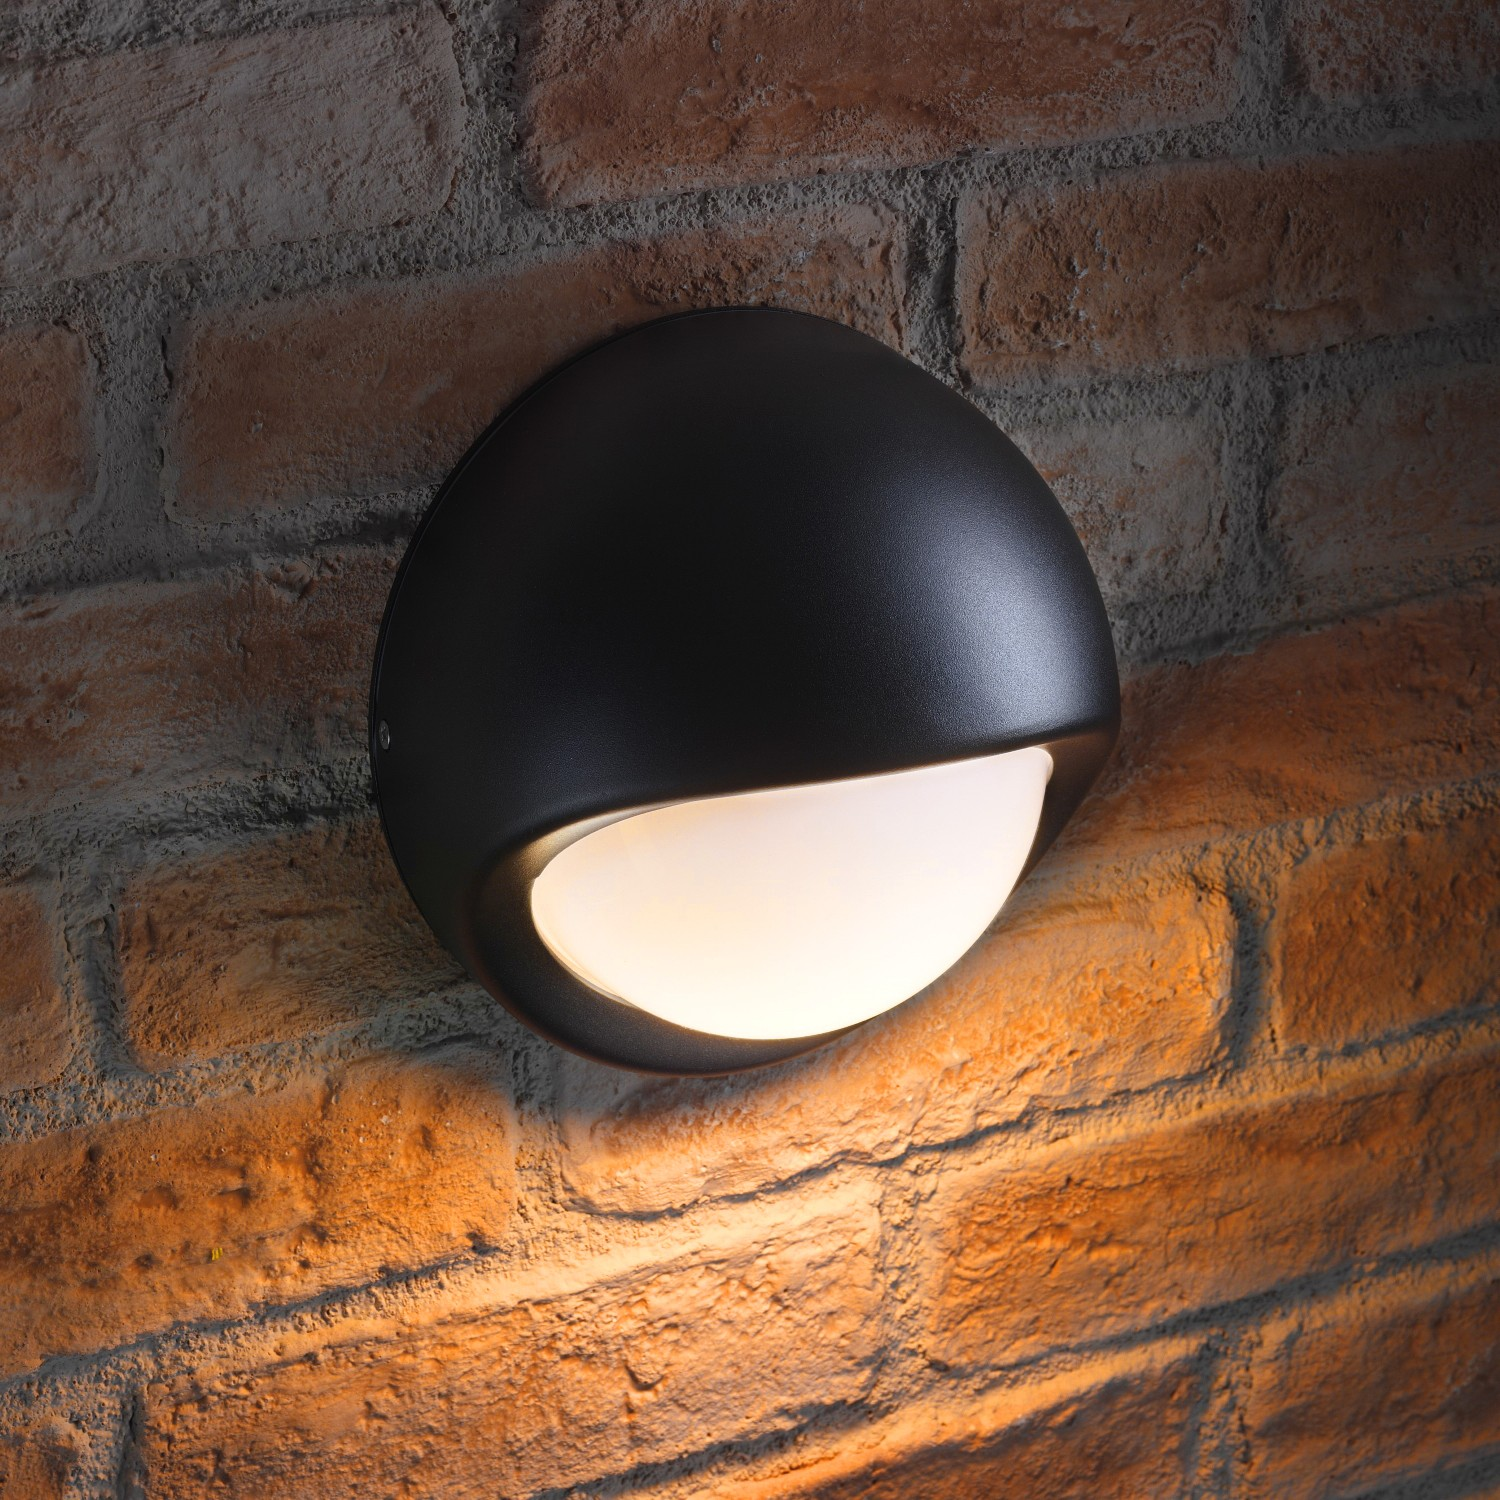 Auraglow ip44 5w led round 240v outdoor wall light benson auraglow led lighting for Round exterior lights